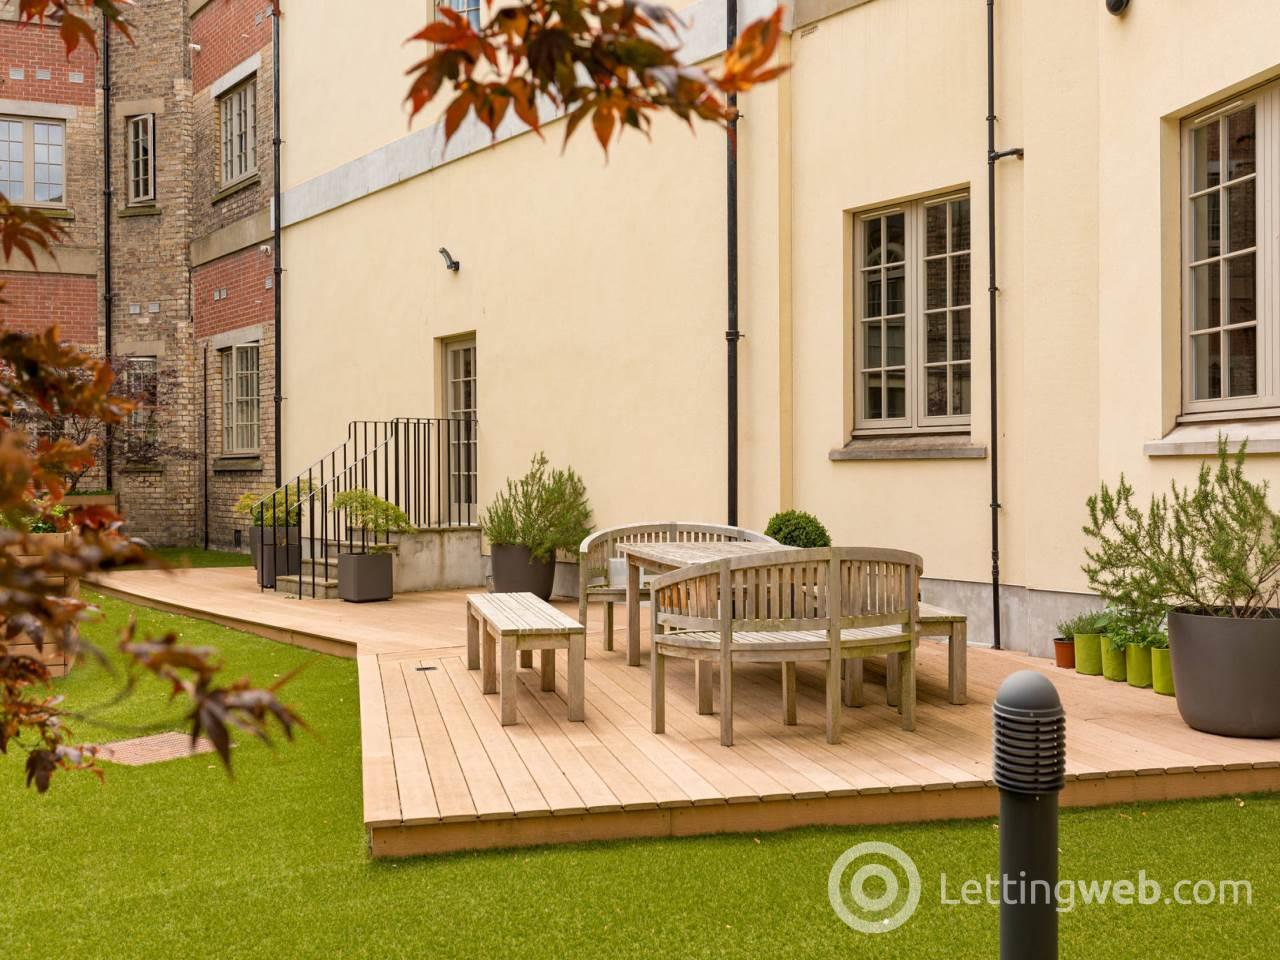 Property to rent in Leith, Edinburgh